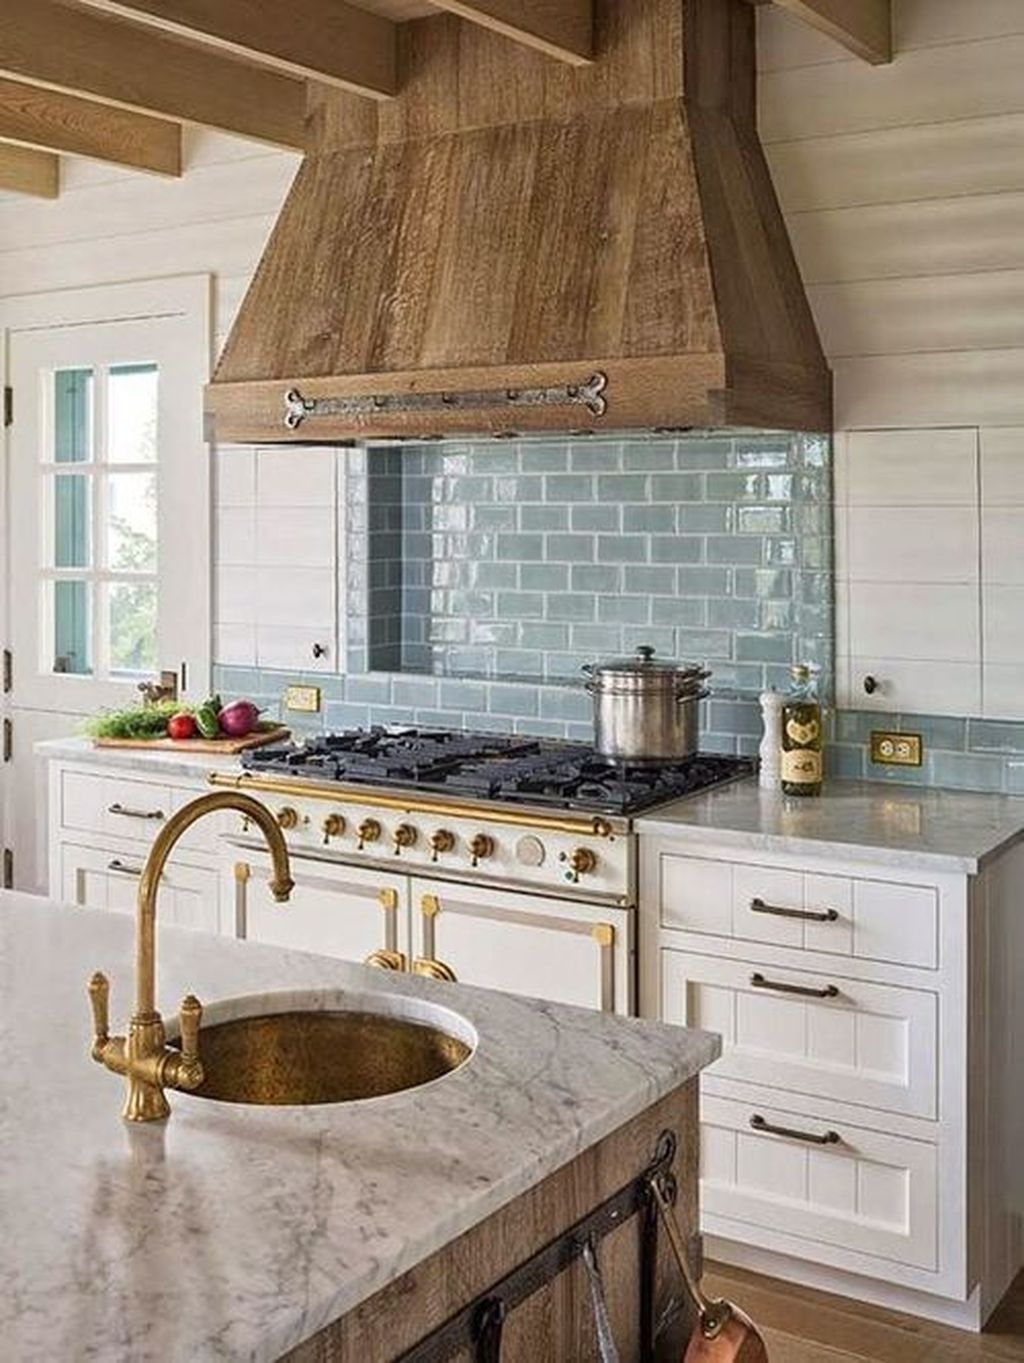 Awesome Rustic Kitchen Design Ideas 40